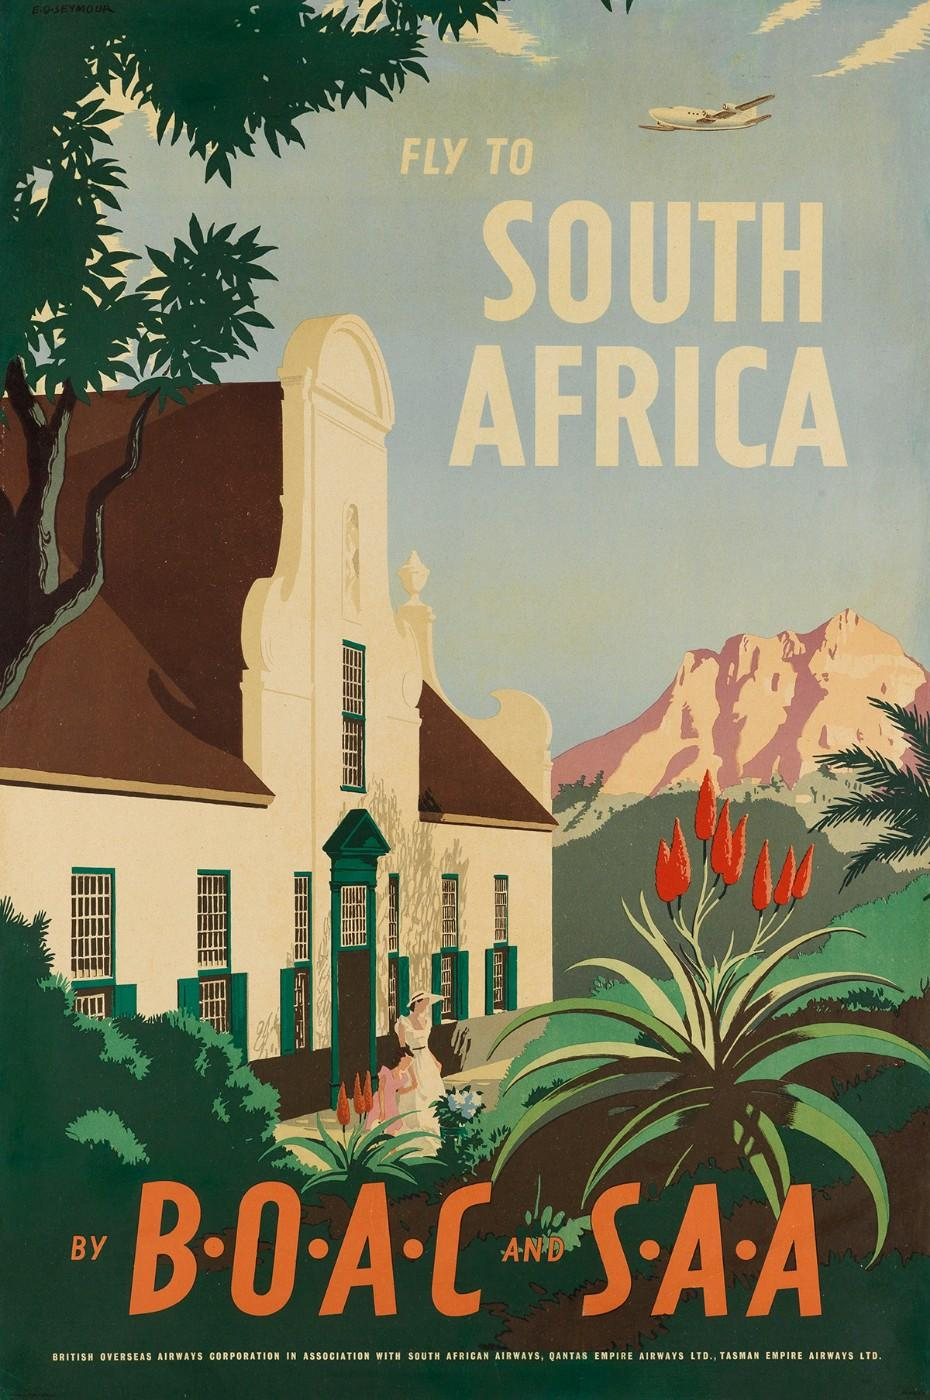 E.O. Seymour, Fly to South Africa/By BOAC and SAA, 1950